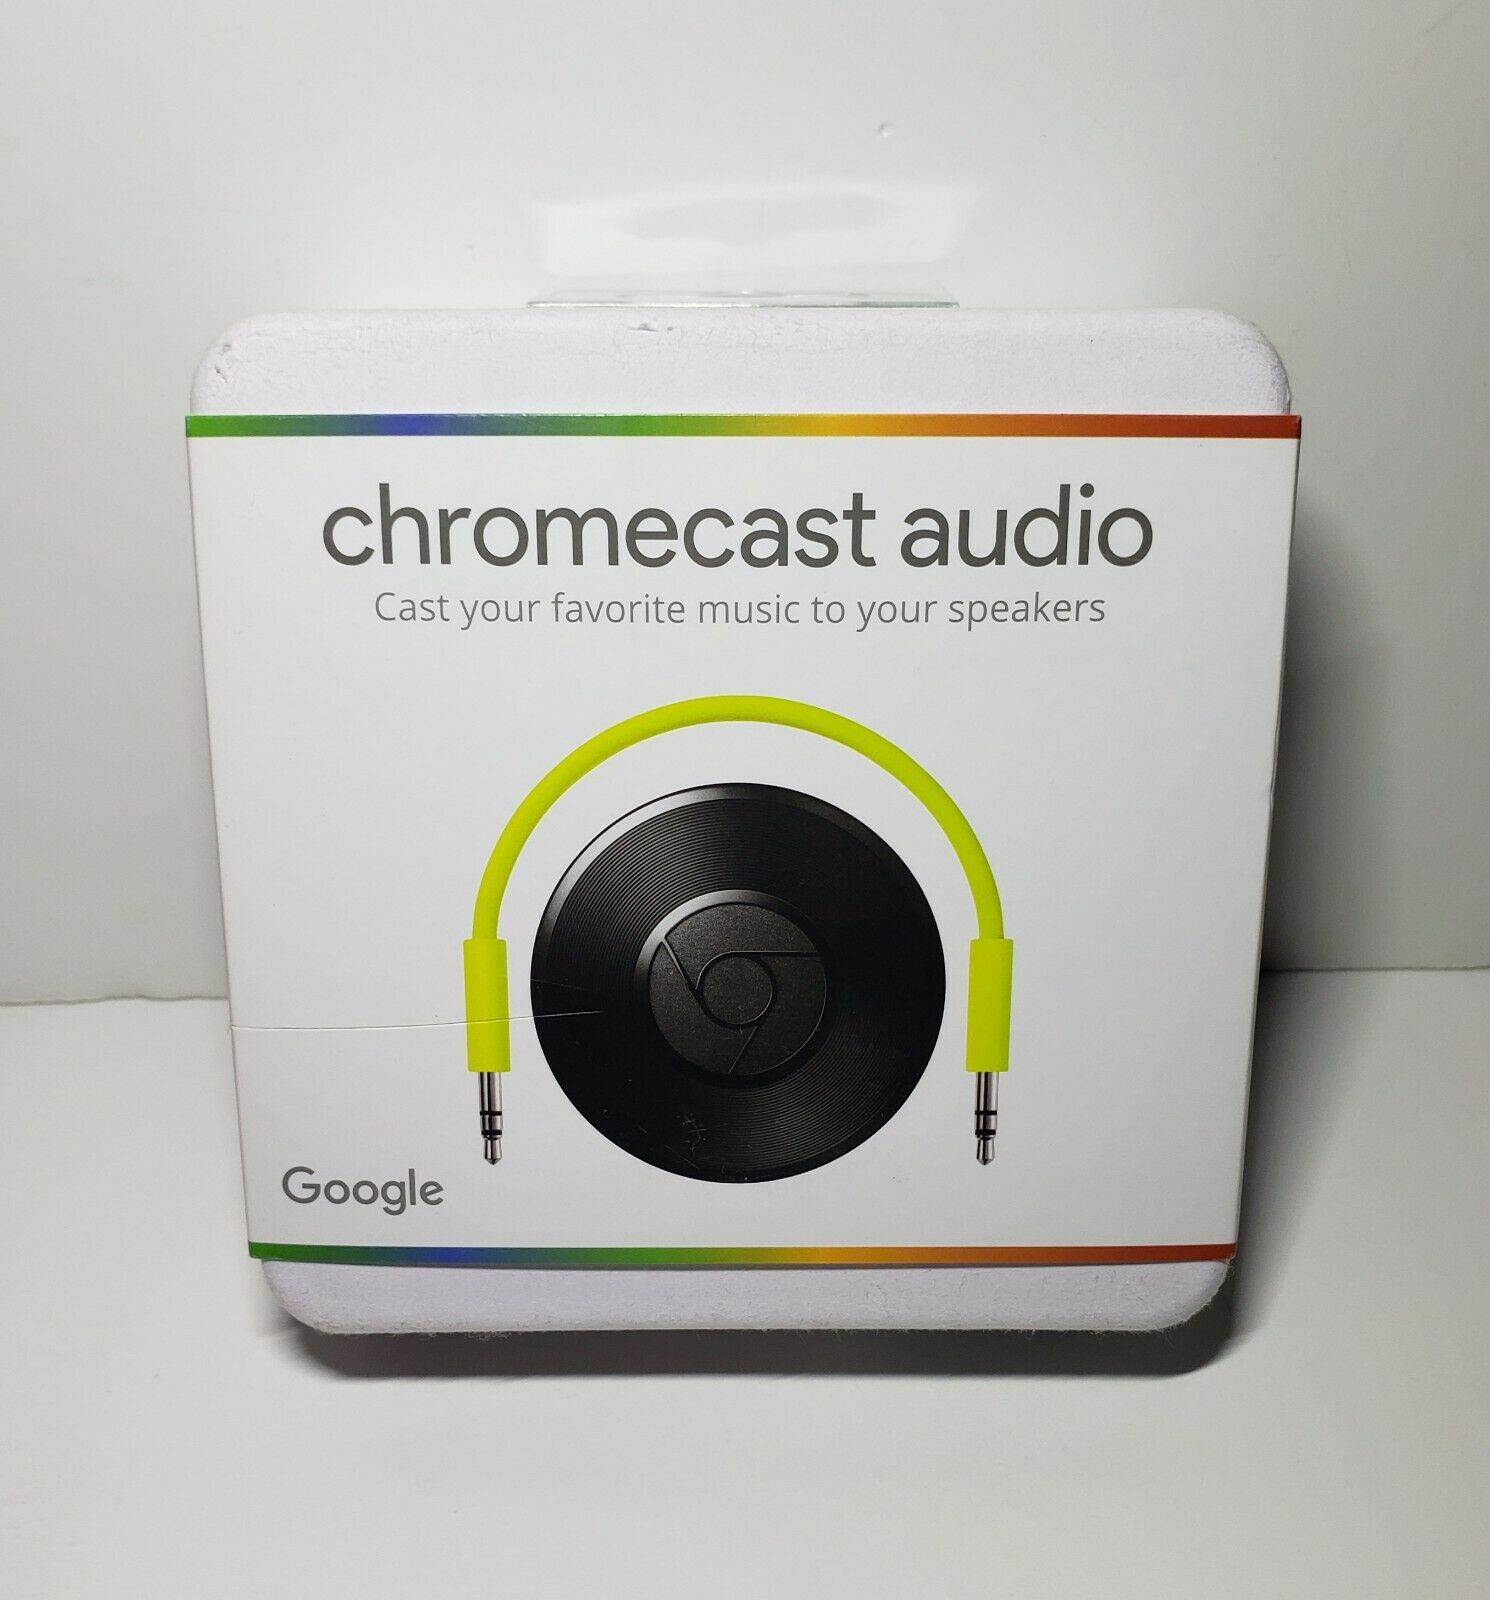 Chromecast Audio, Wifi media player - New -(Box has little scratch see pictures) chromecast has little media new player scratch see wifi